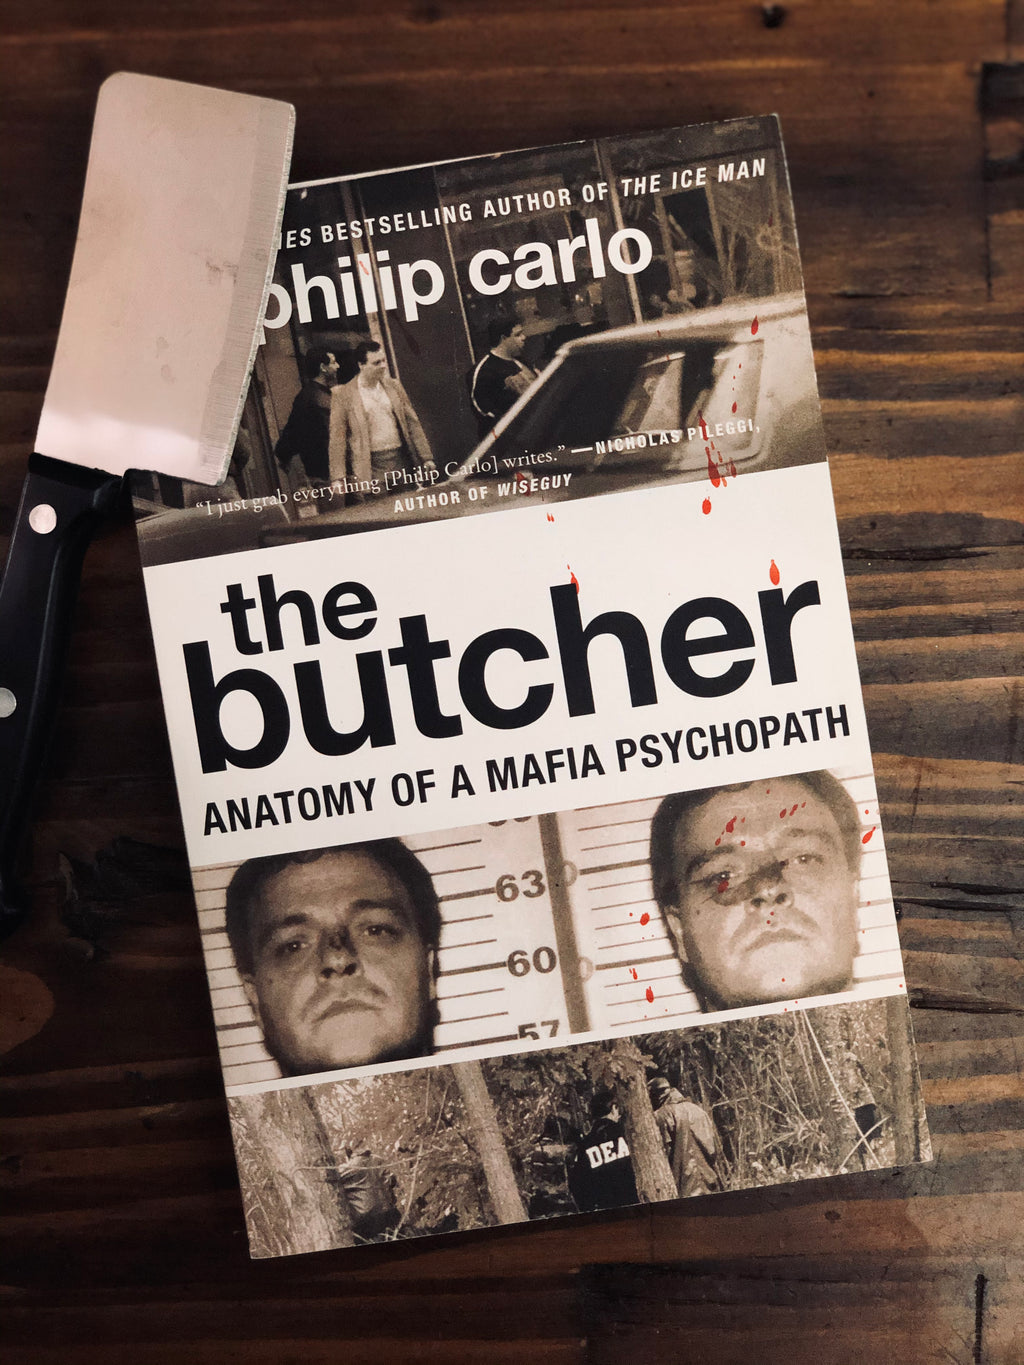 The Butcher by Phillip Carlo